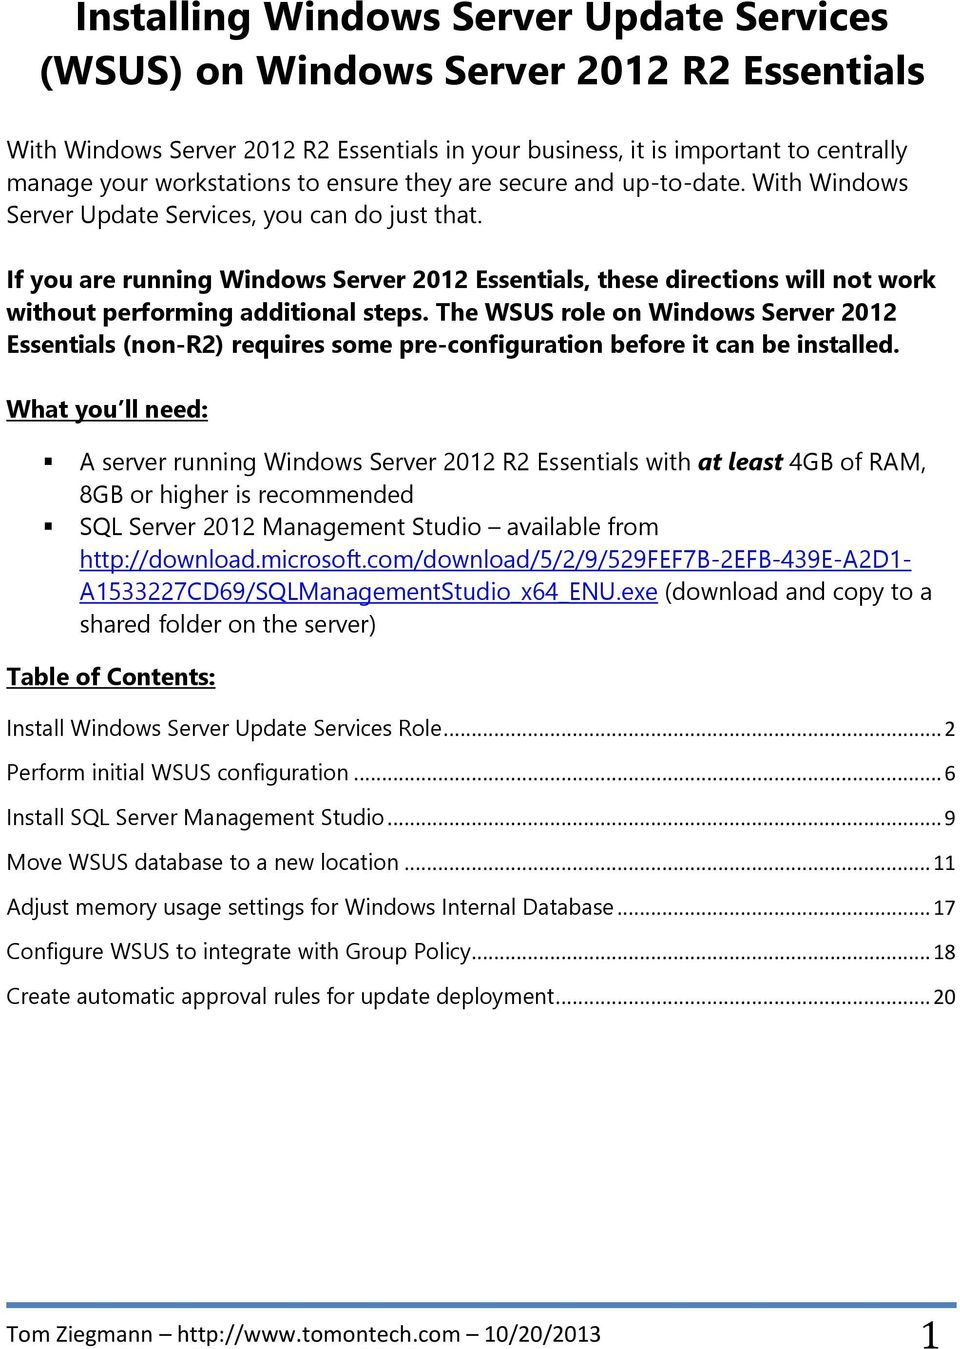 If you are running Windows Server 2012 Essentials, these directions will not work without performing additional steps.